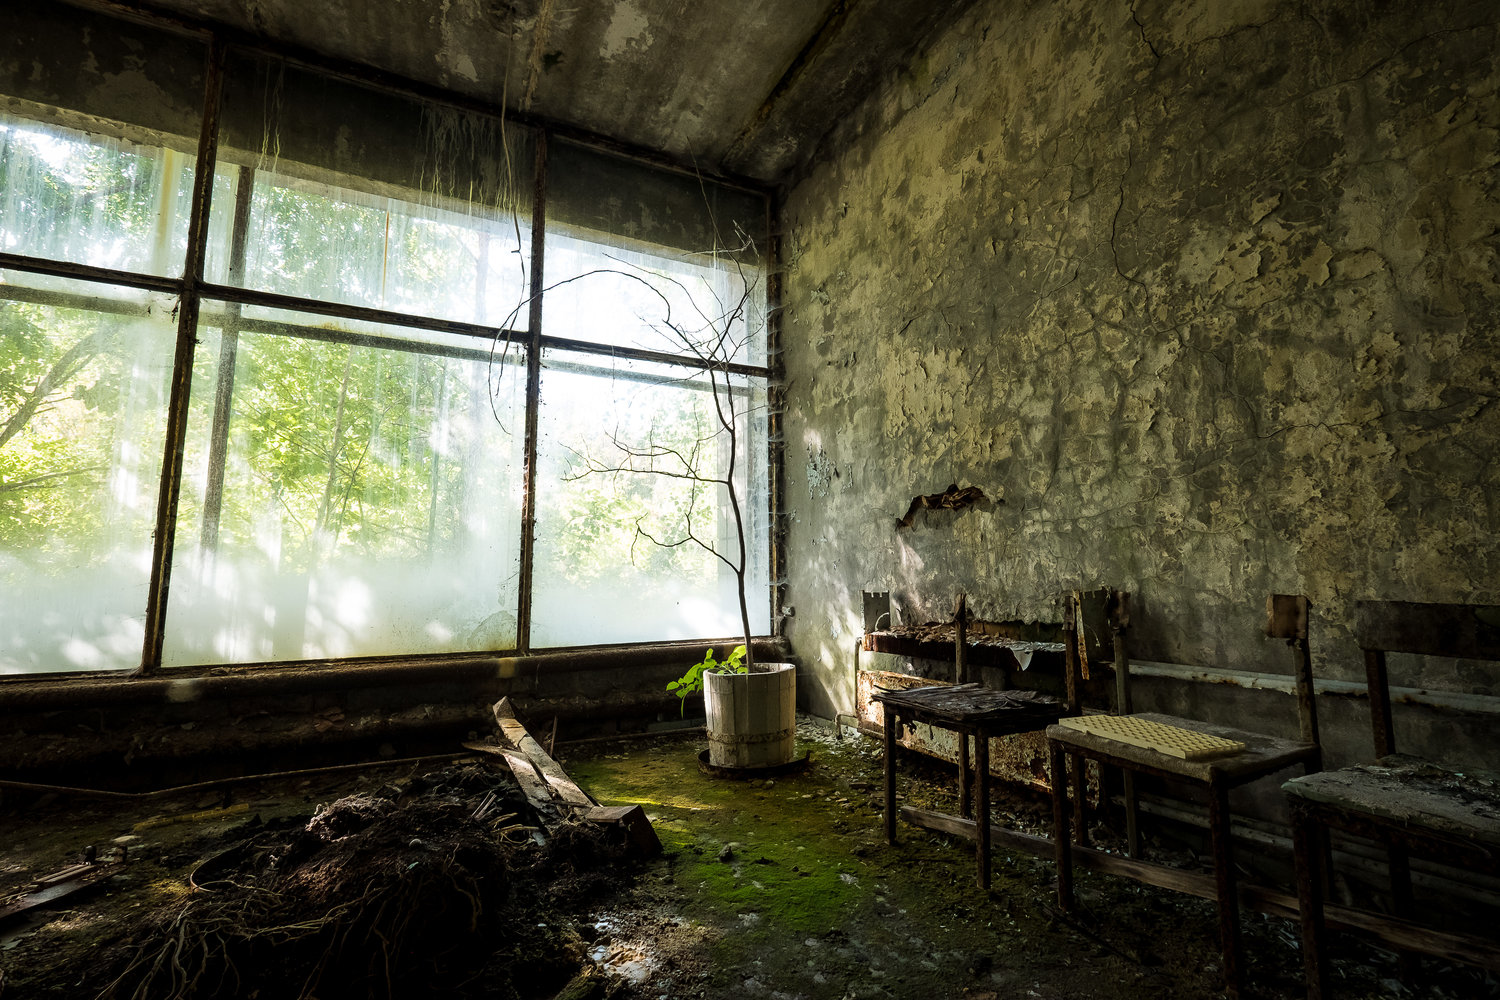 Two days in the Chernobyl Exclusion Zone, part I — My